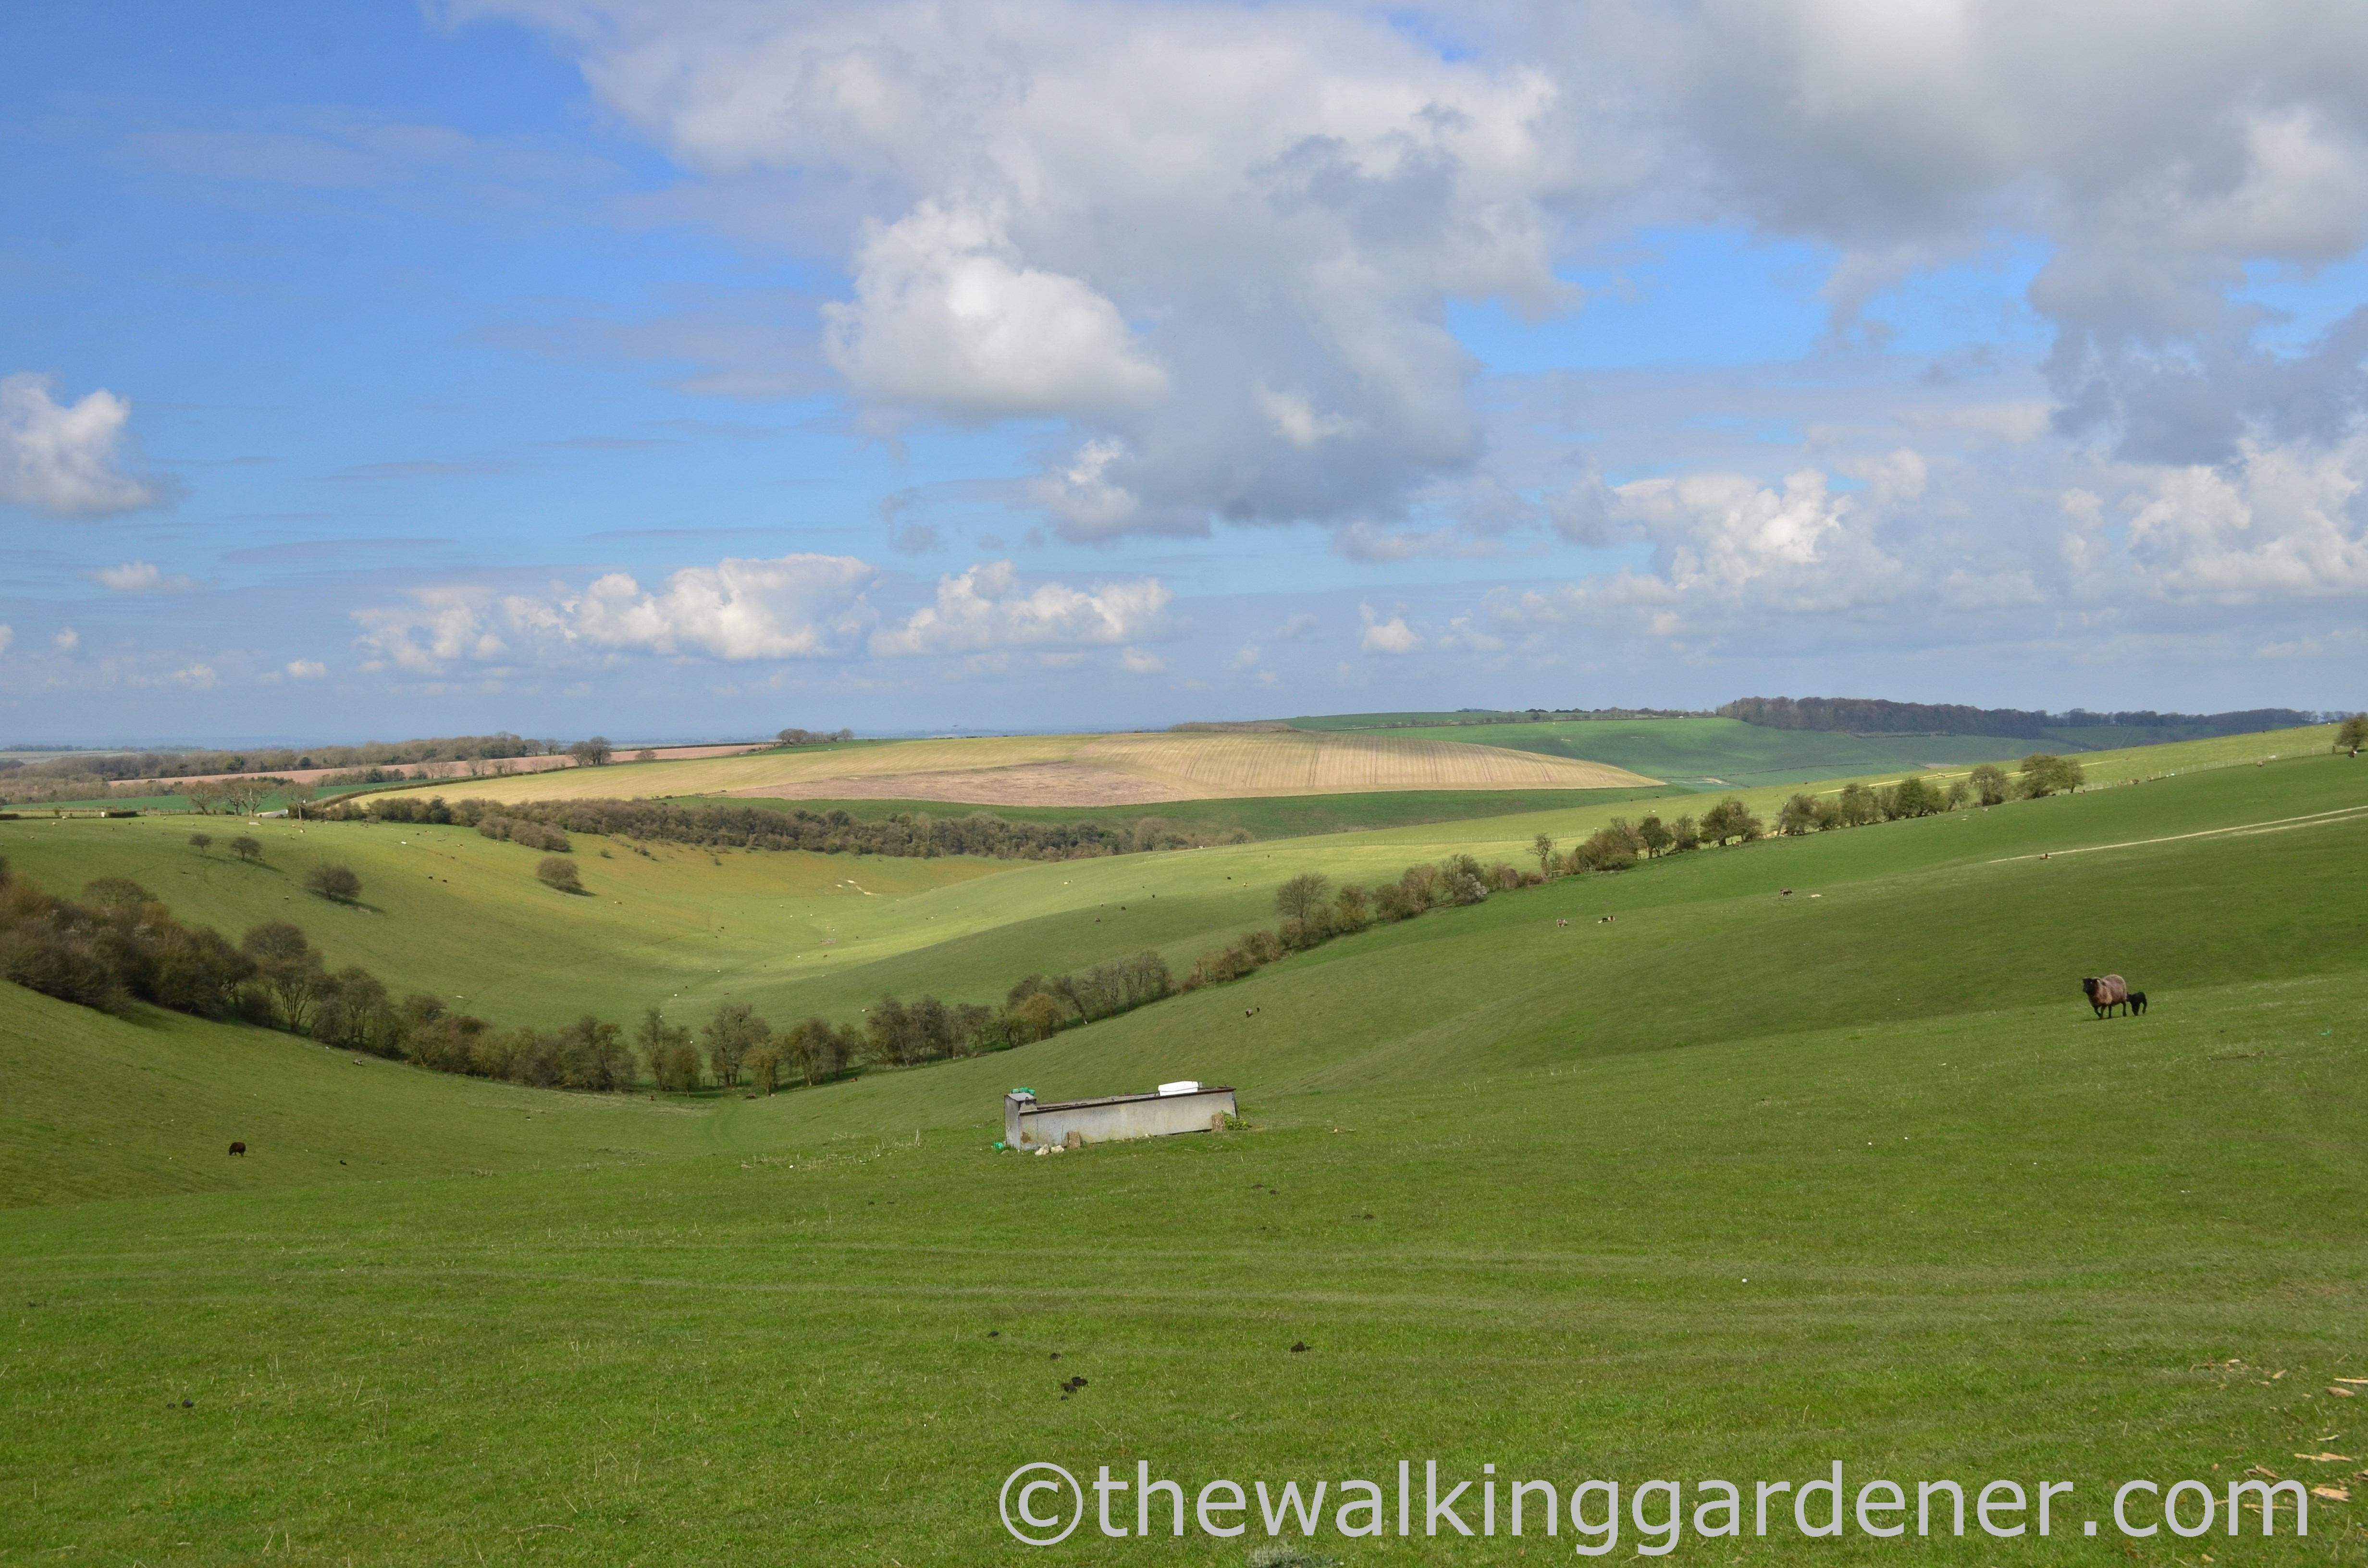 The South Downs Way: Day 2 – East Meon to South Harting